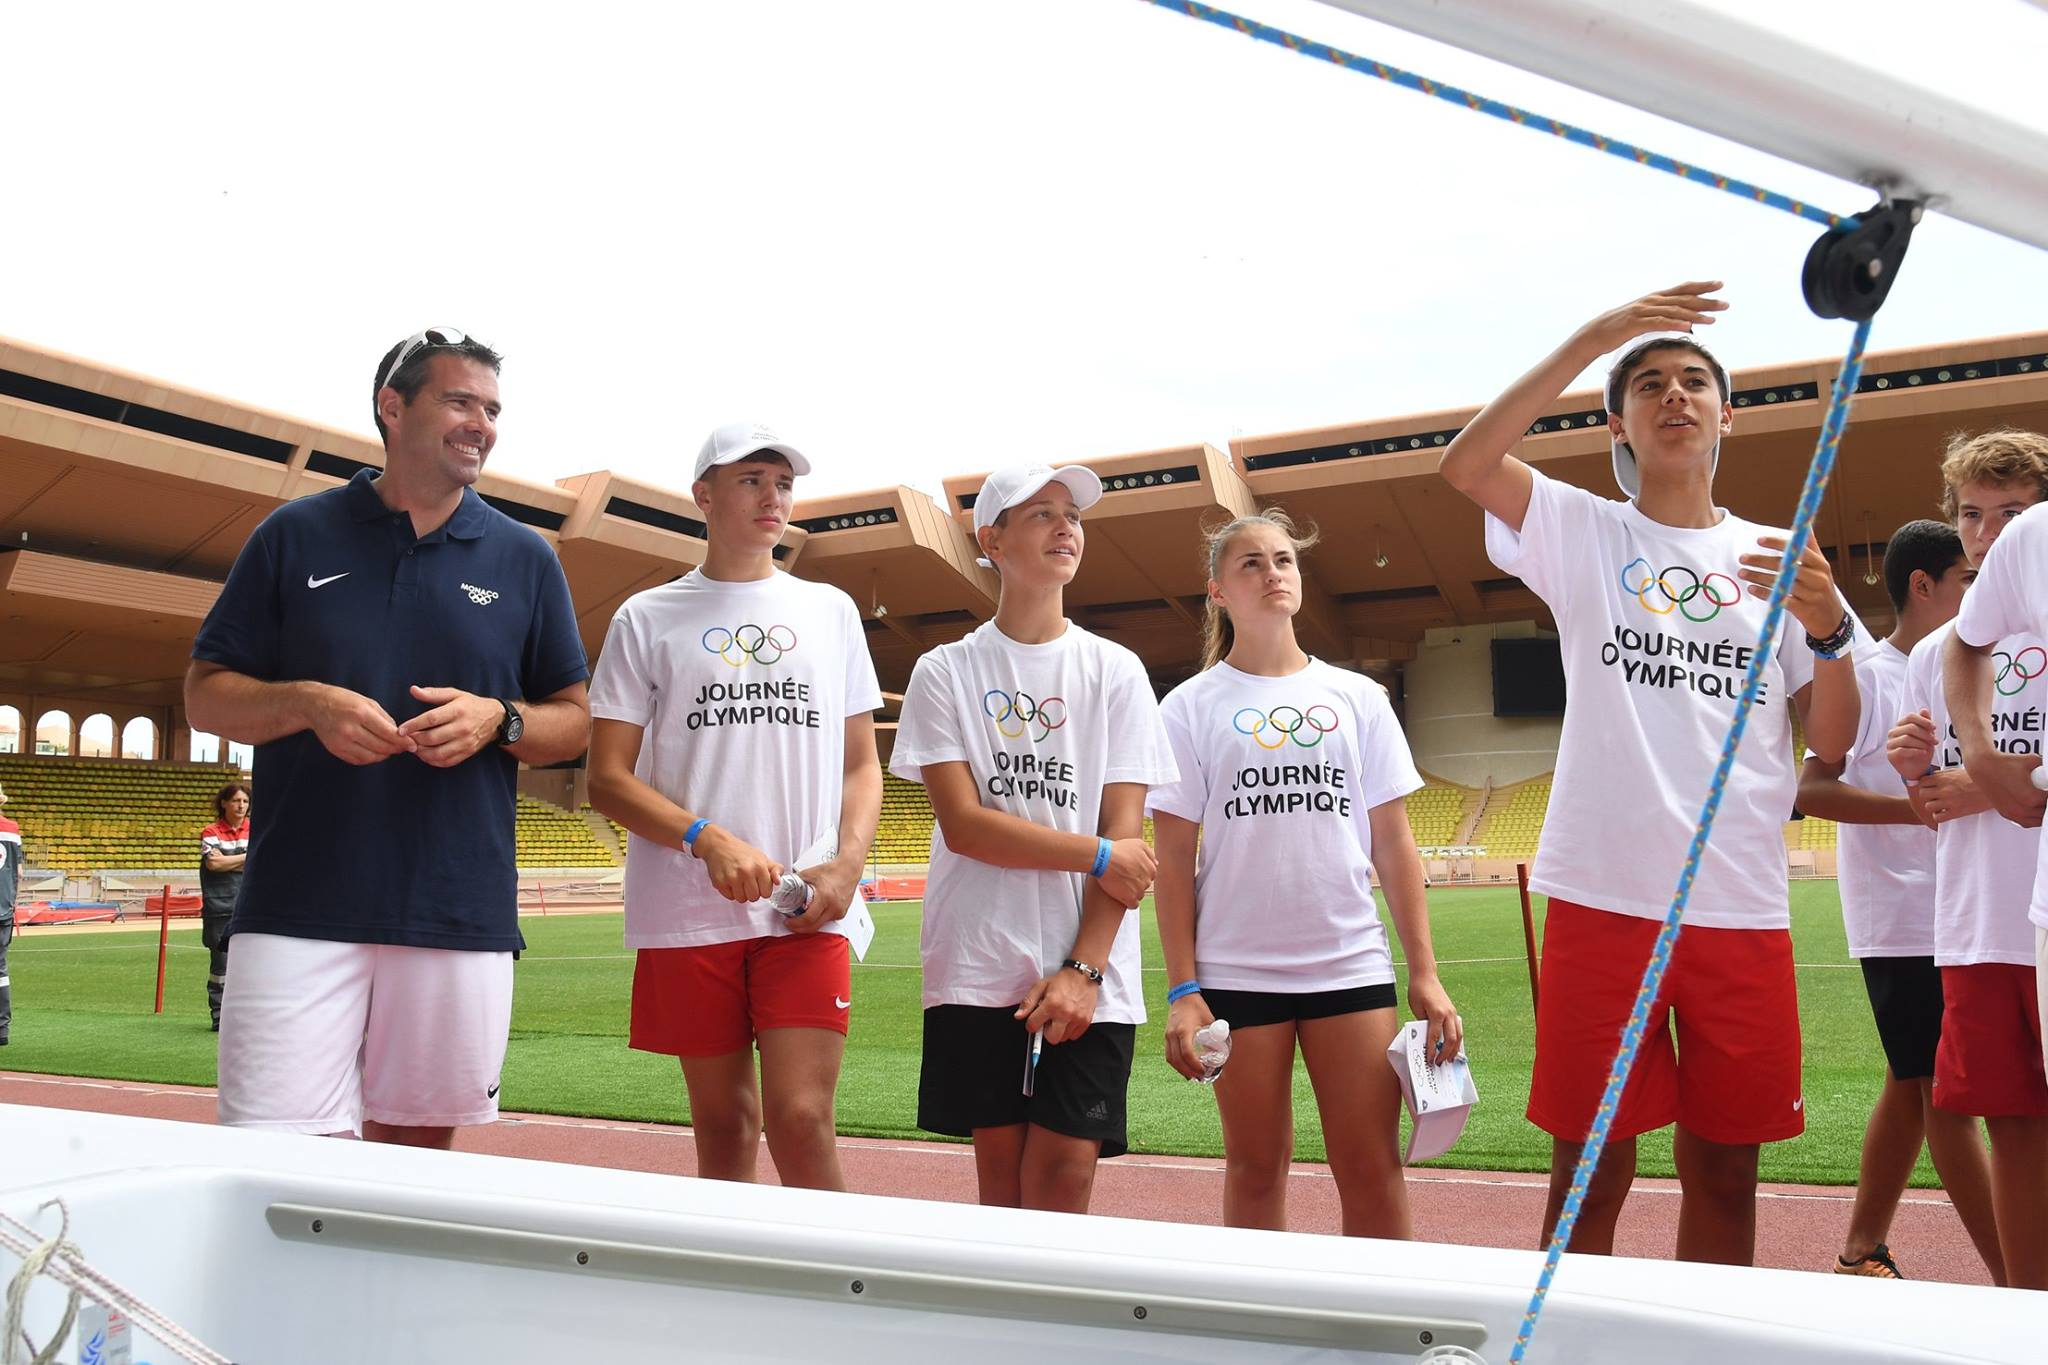 Olympic Day: Prince Albert II and young athletes